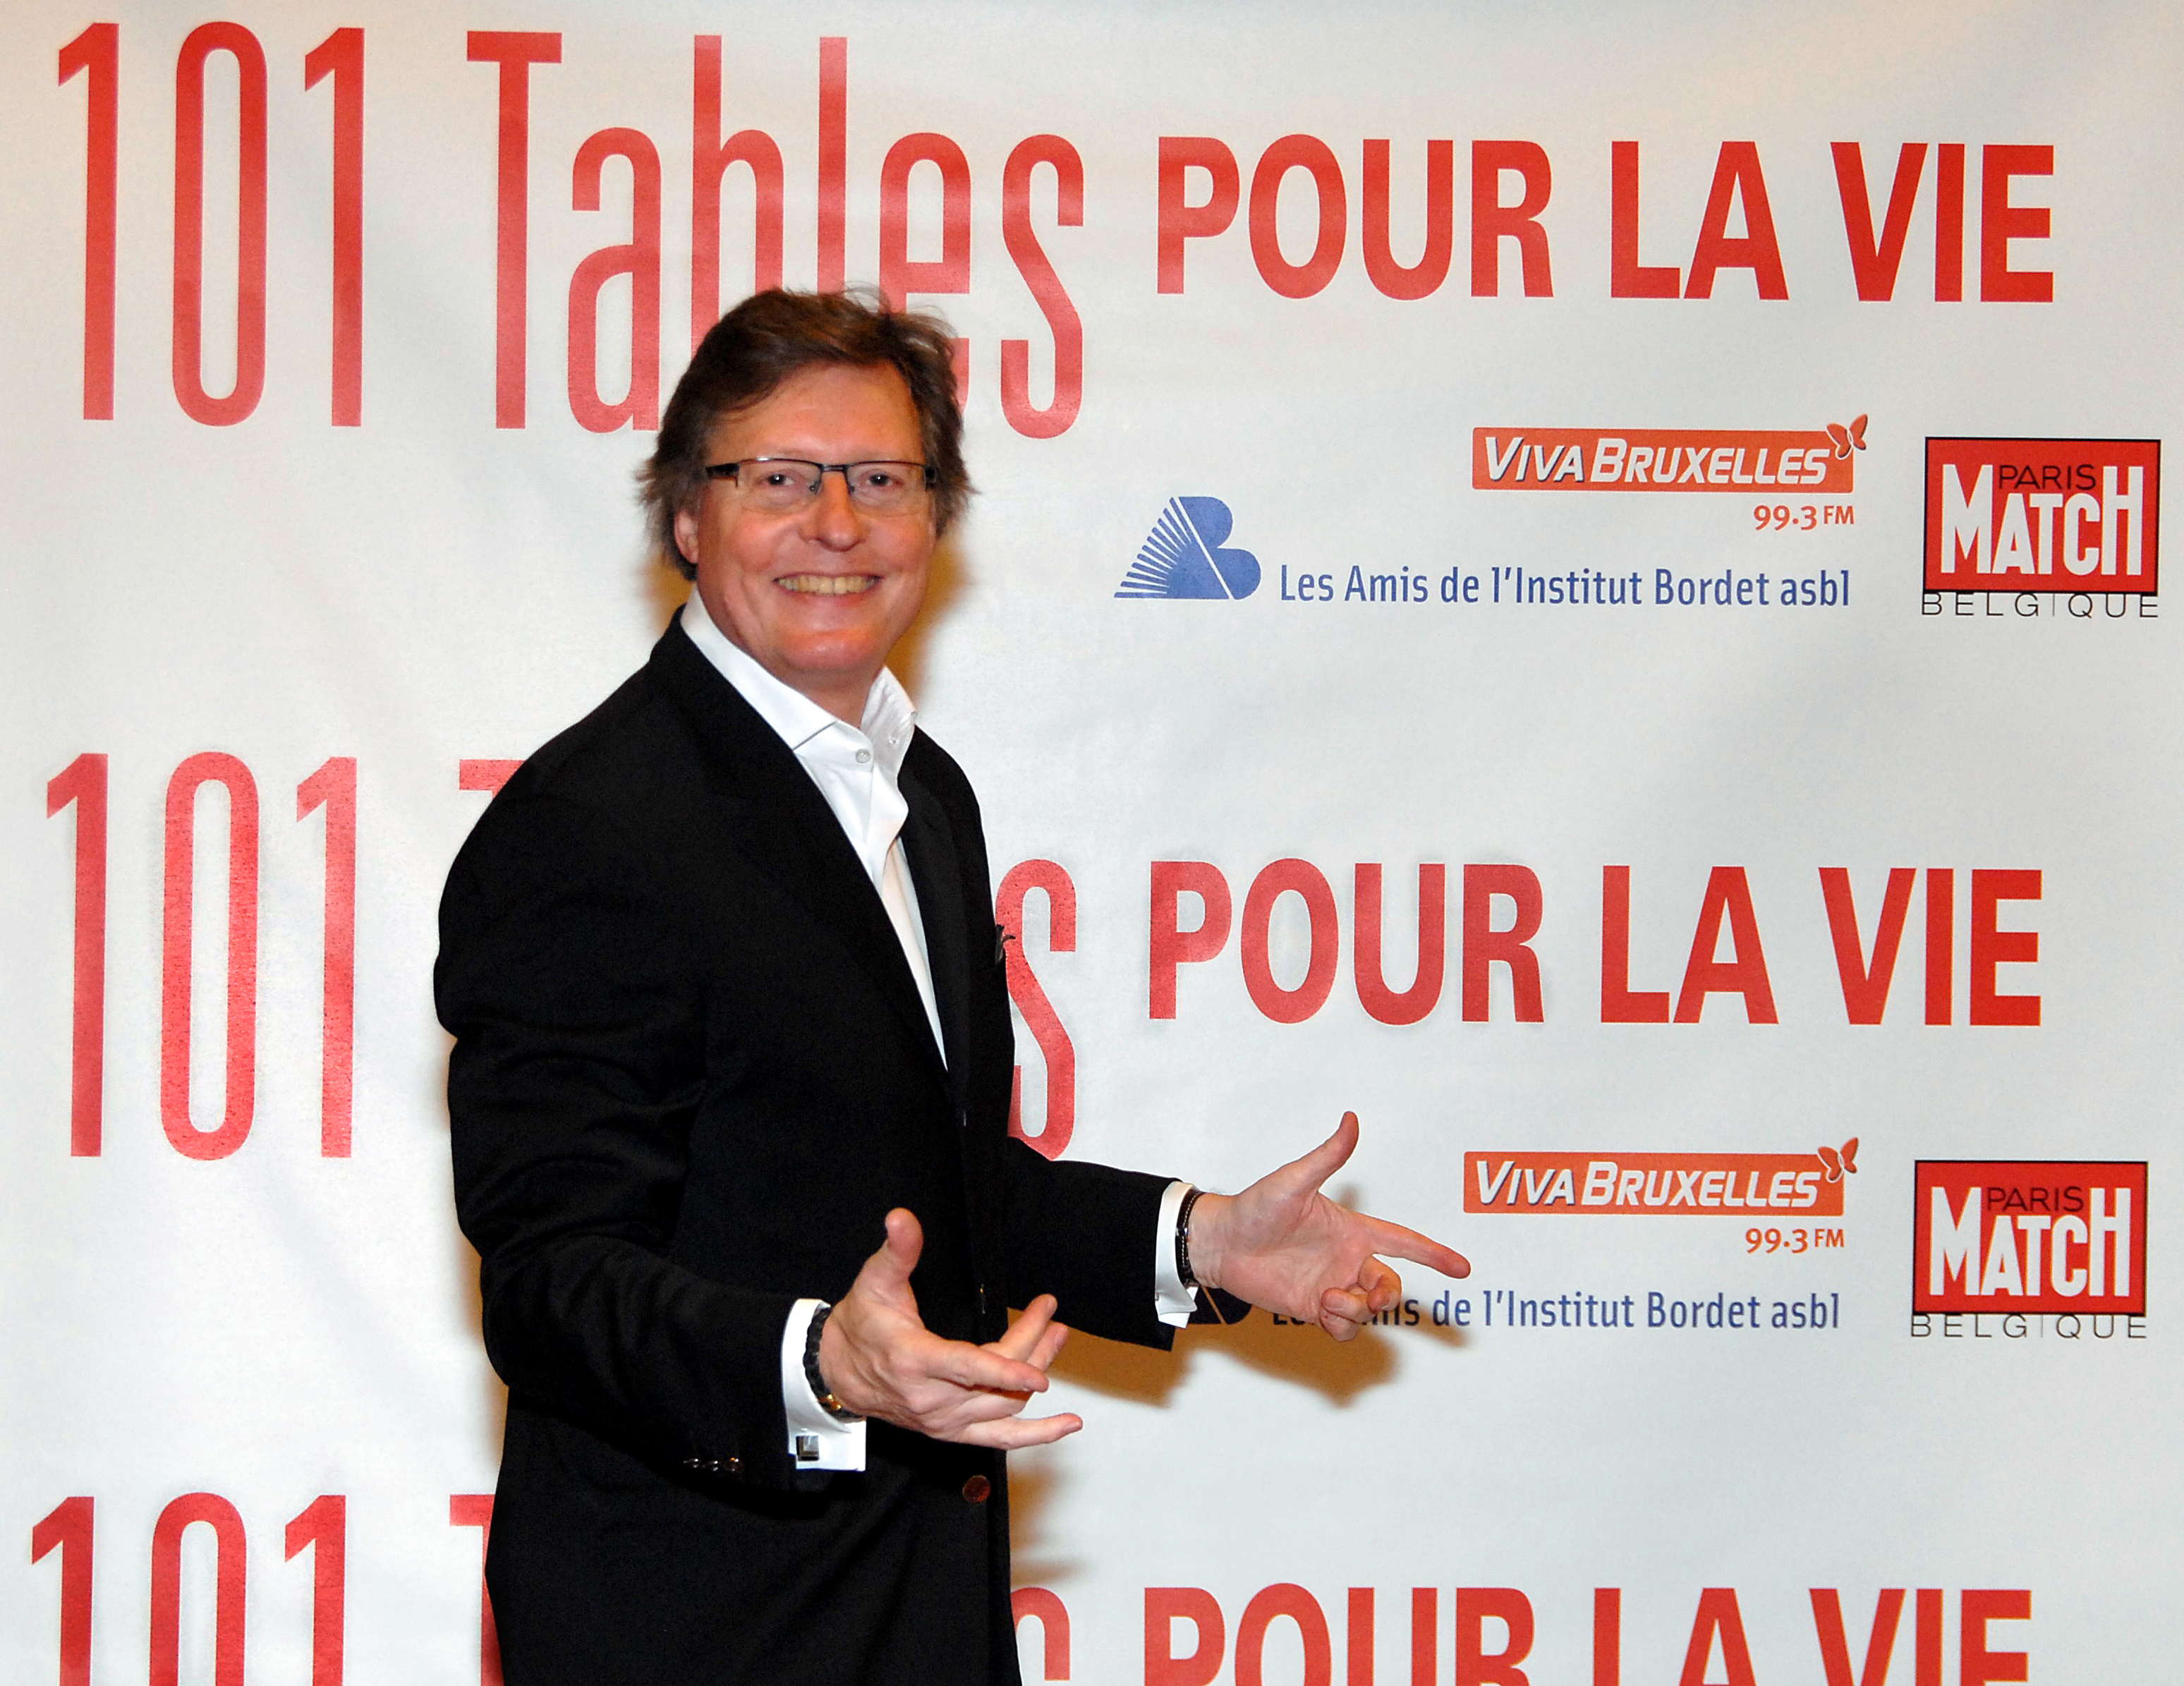 Jean-Pierre Tordeurs - Paris Match - 101 Tables